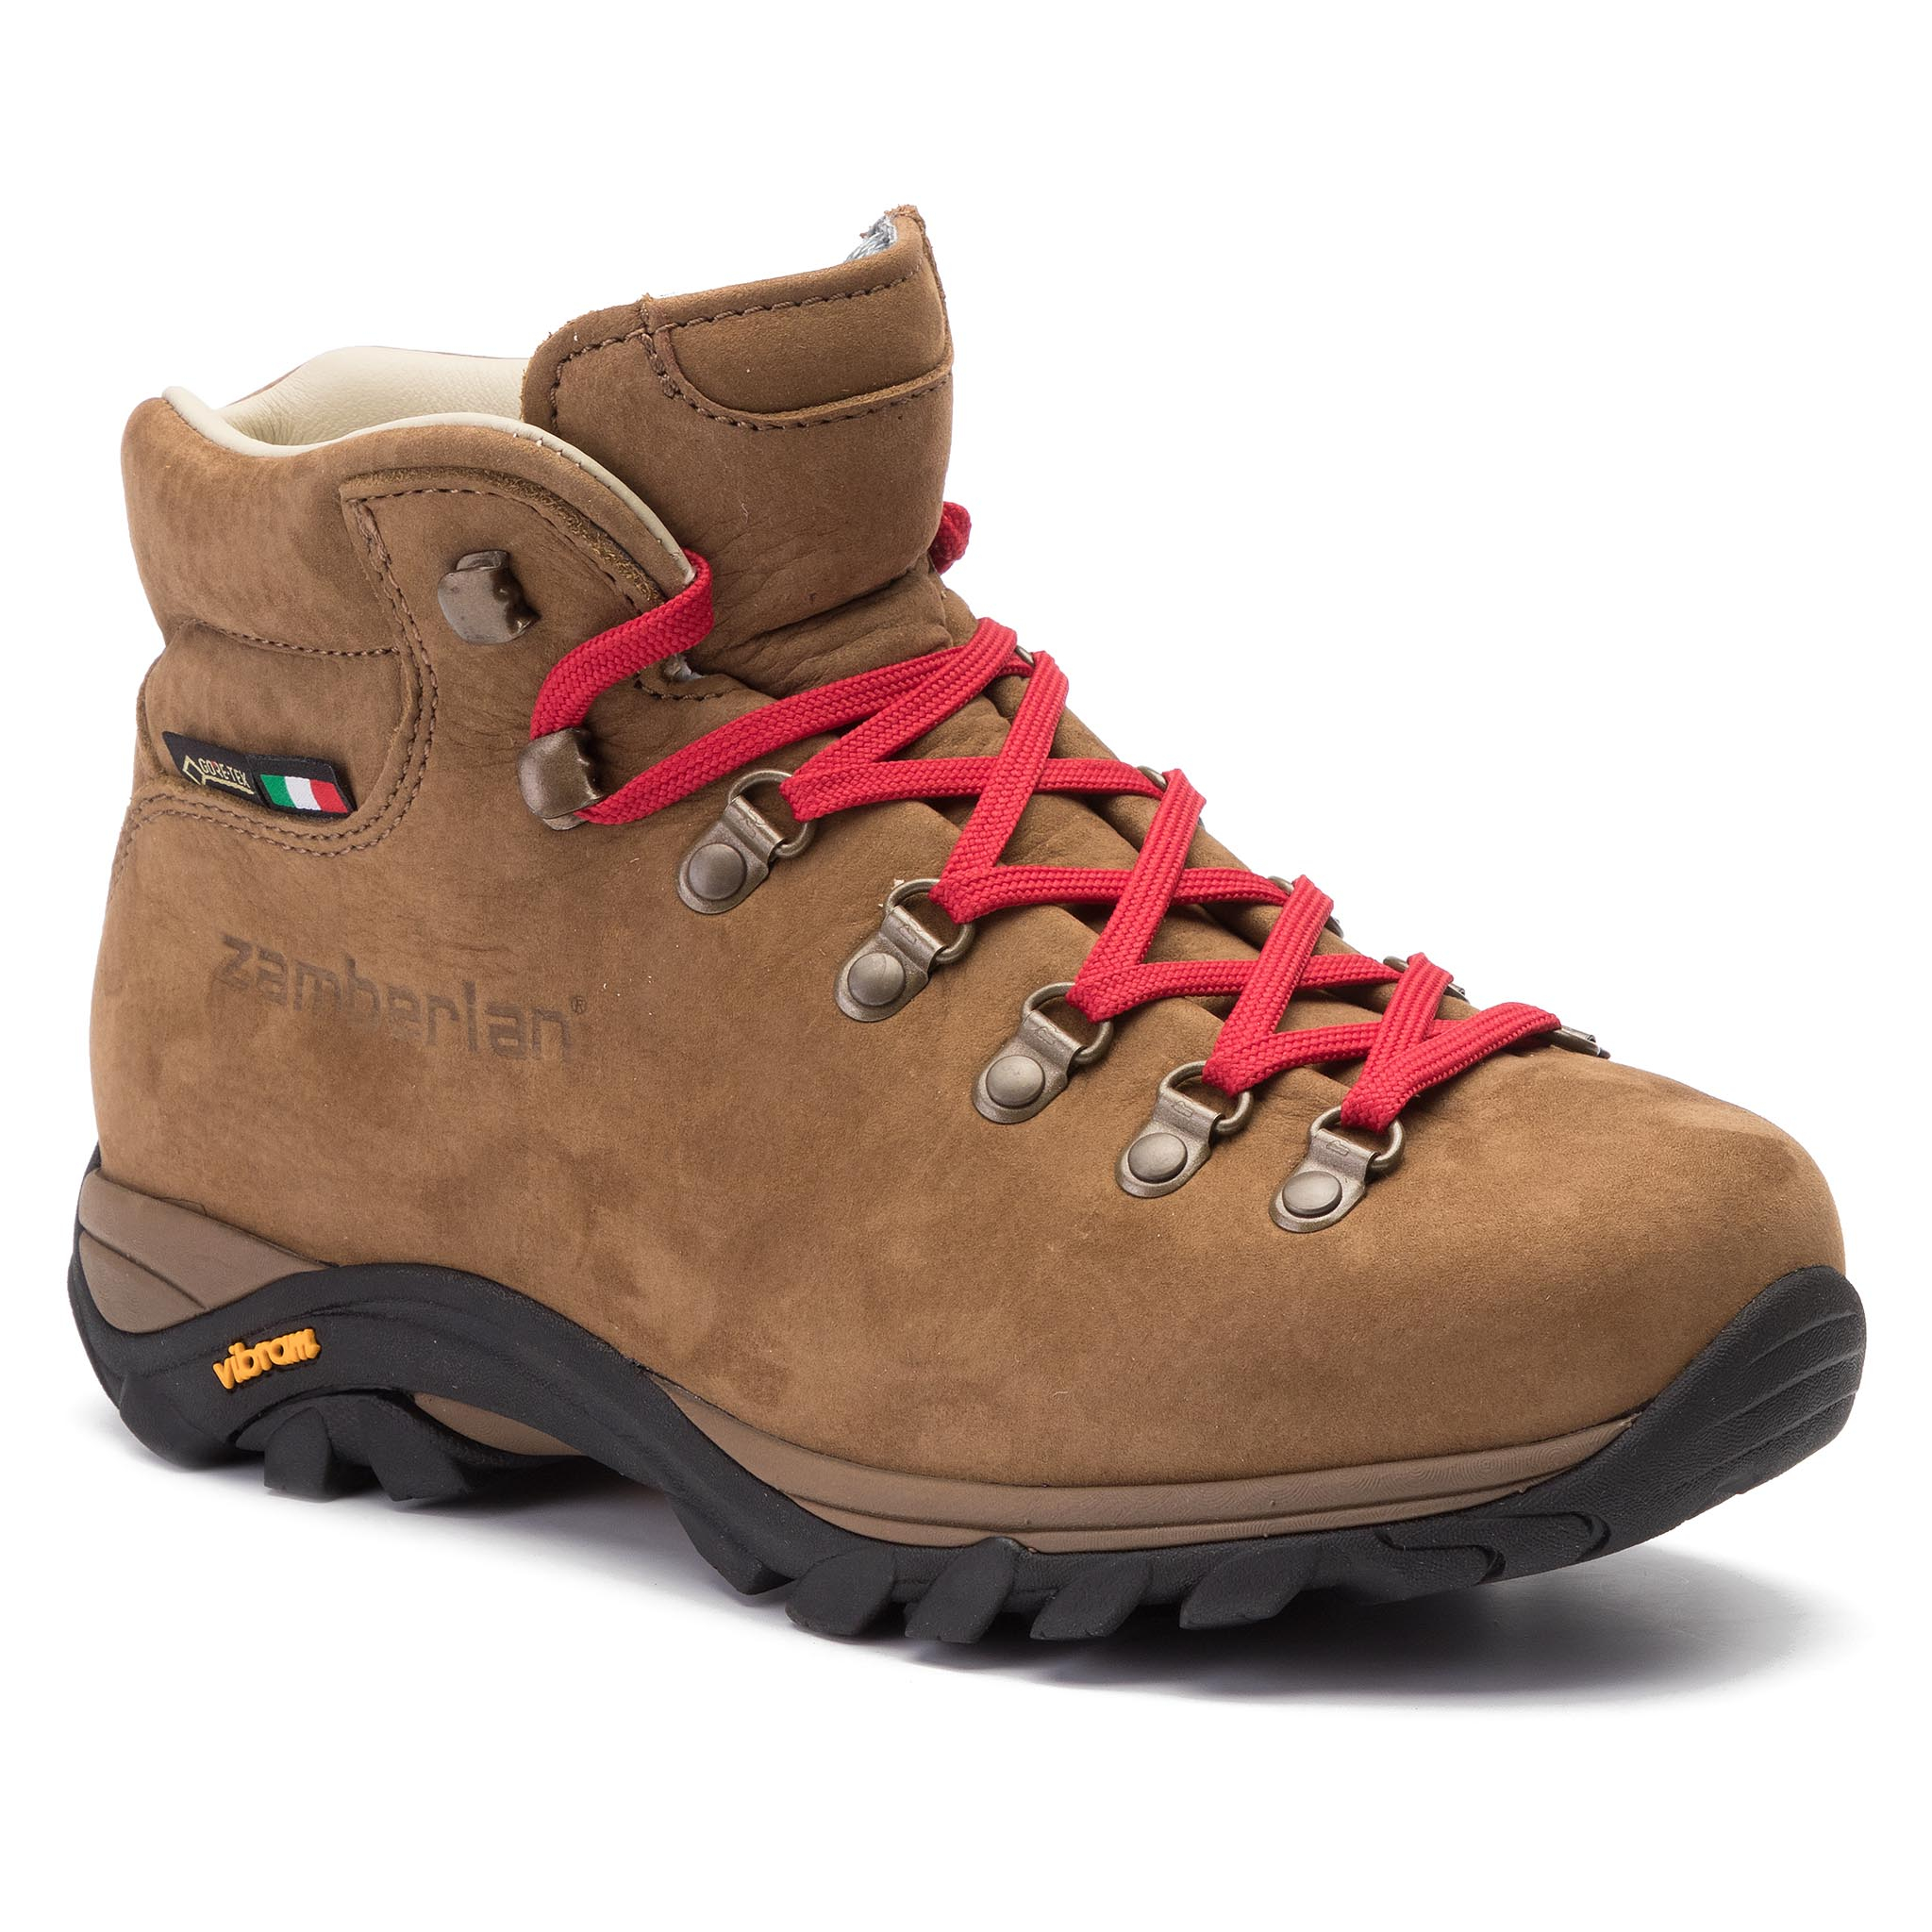 Trekkings Zamberlan - New Trail Lite Evo Gtx Gore-Tex Brown imagine epantofi.ro 2021